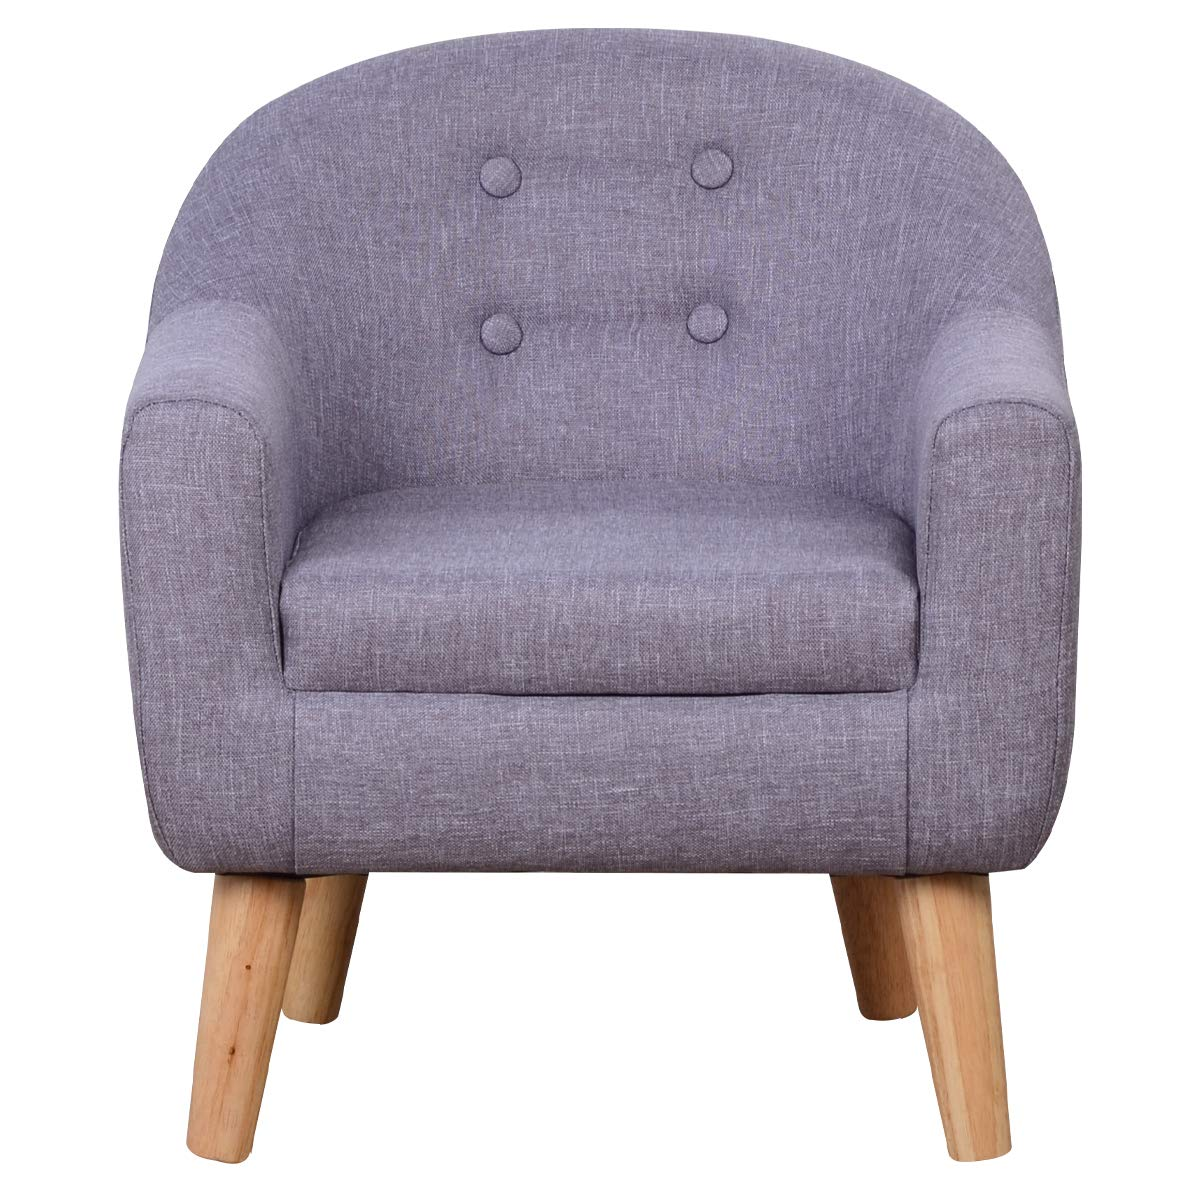 Durable Linen Fabric Upholstered Kids Chair with Wooden Frame for Children Gift, (Gray)